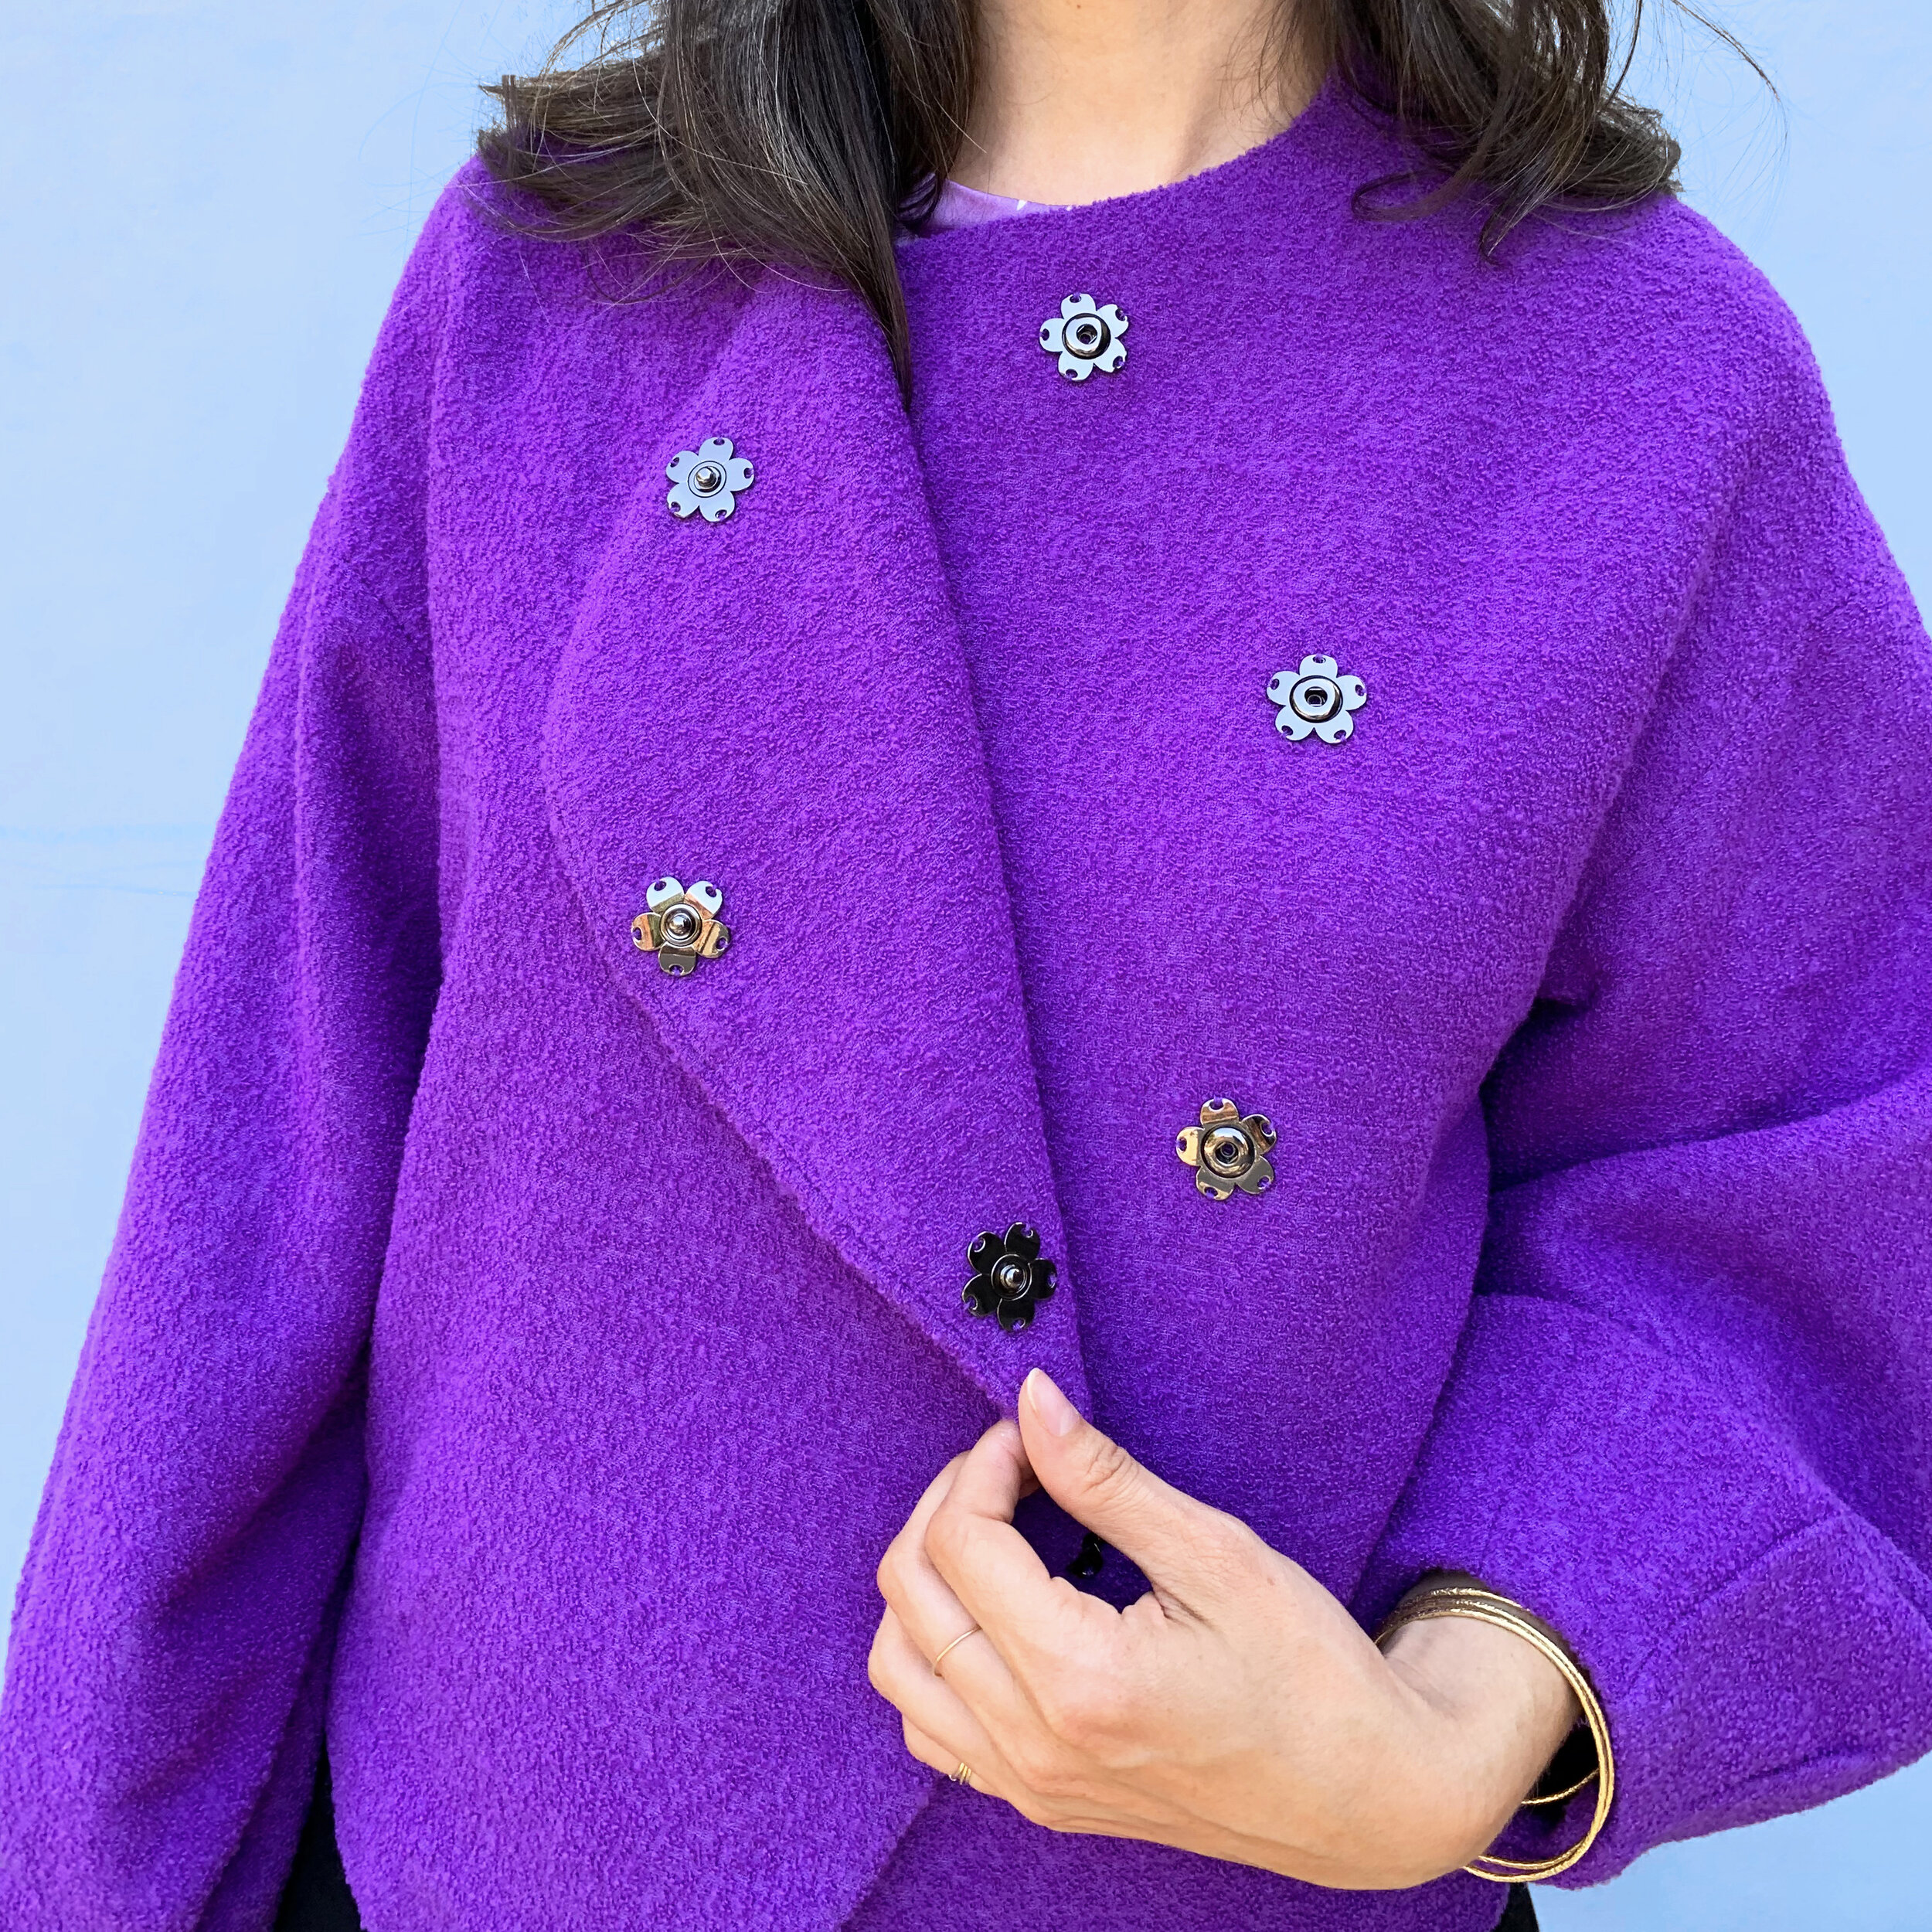 purple jacket on body cropped front flop.jpg